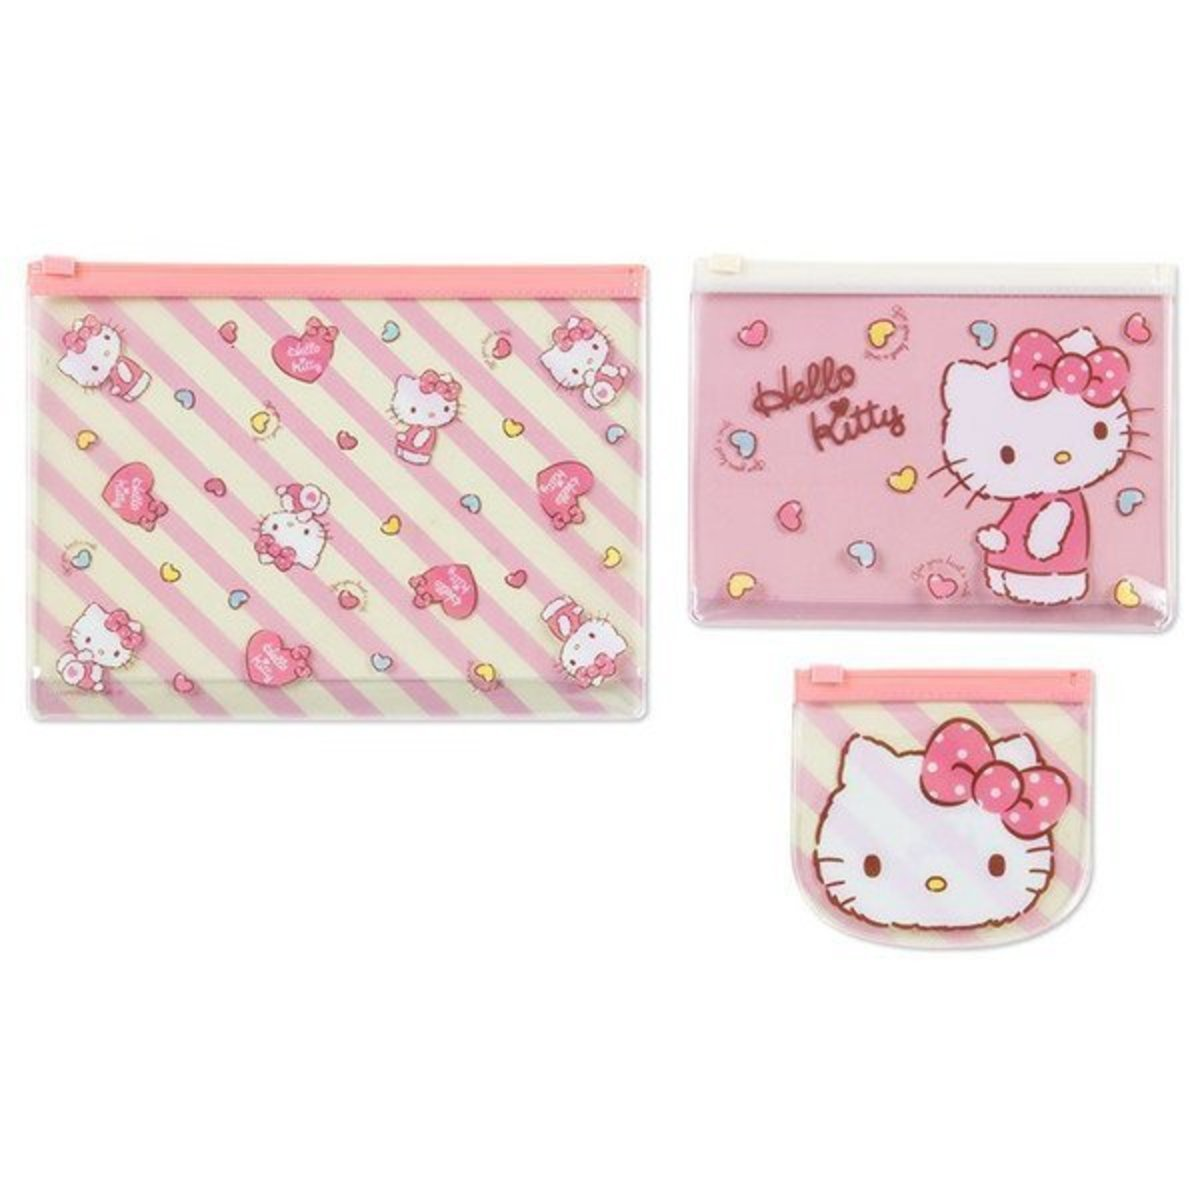 Sanrio Hello Kitty Face Mask Pink Bacteria Filter Travel Kit Cute Cat Gift 3D